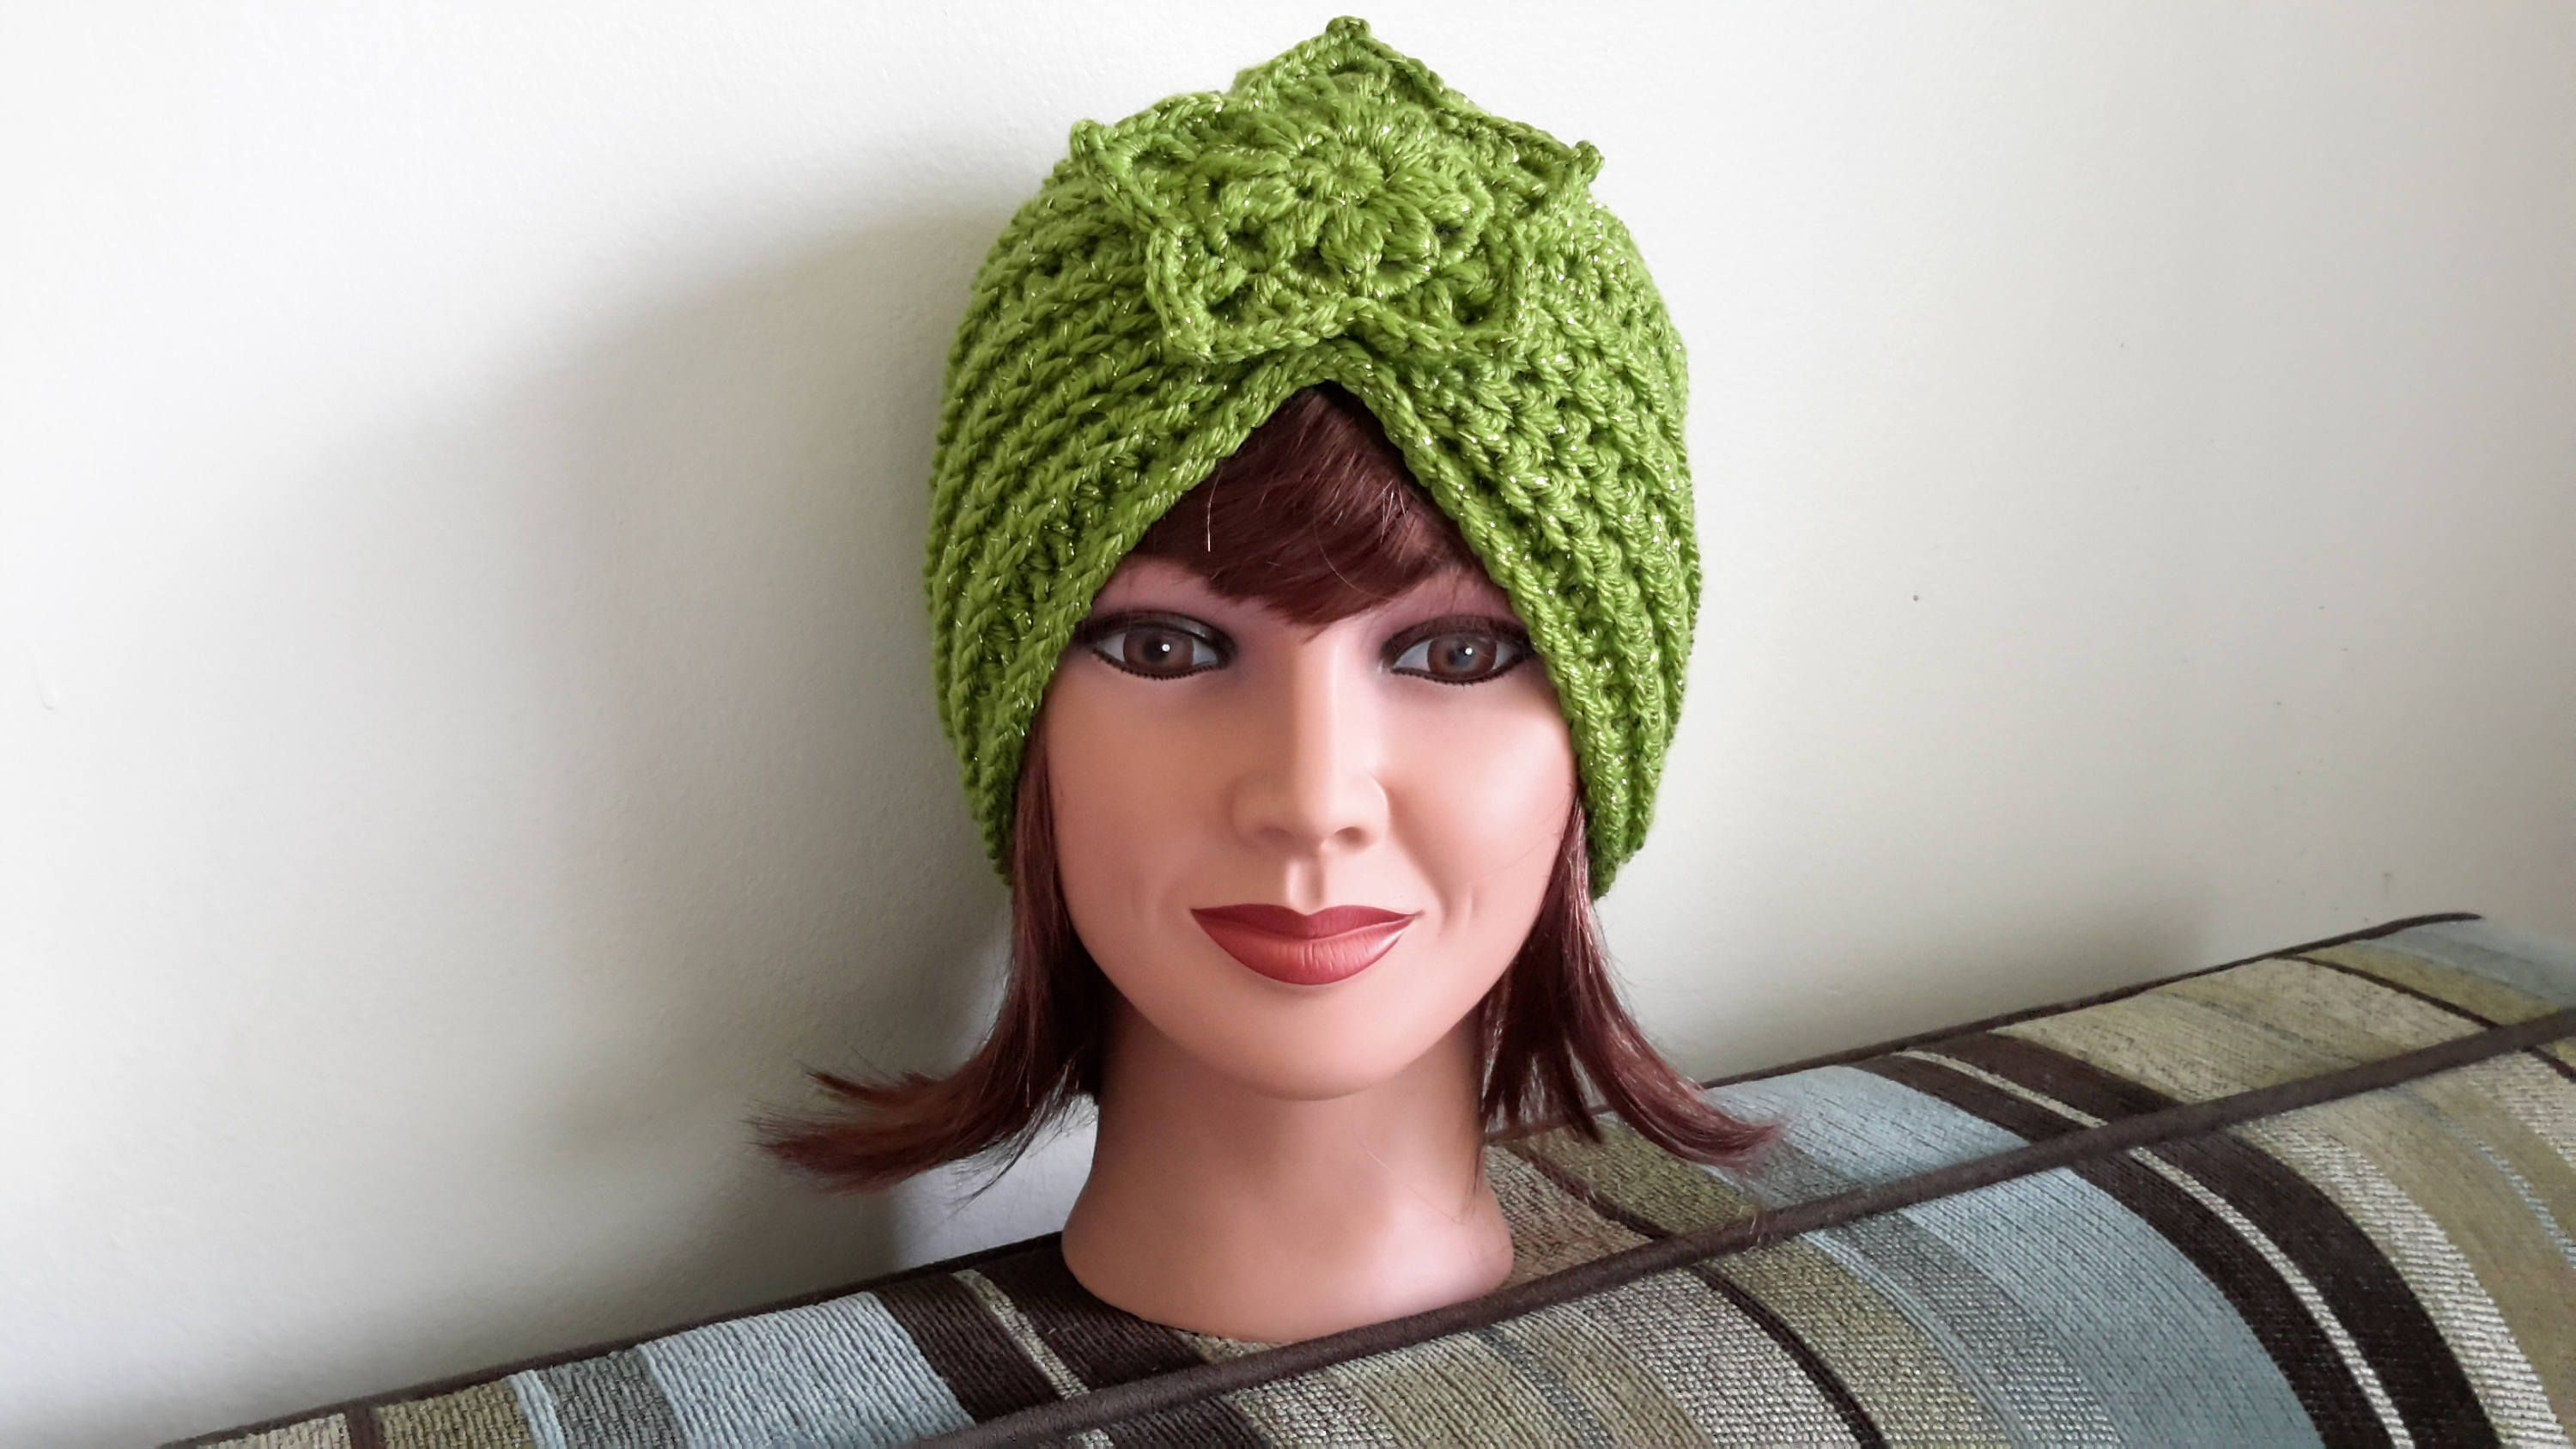 Classy , Stylish, cozy, elegant turban with sparkle! Adorned with a star! Warm and comfortable, lightweight Retro hand crocheted turban hat - Womens winter head wrap  Color name: Spring Sparkle One size - fits an average adult women and teen heads approximately 20-22 inches circumference.  You may order it in any color, just send me a message request. Care: Hand wash in cool water. Lay flat to dry. Gently reshape if needed.  I try my very best to photograph my items as accurately as…